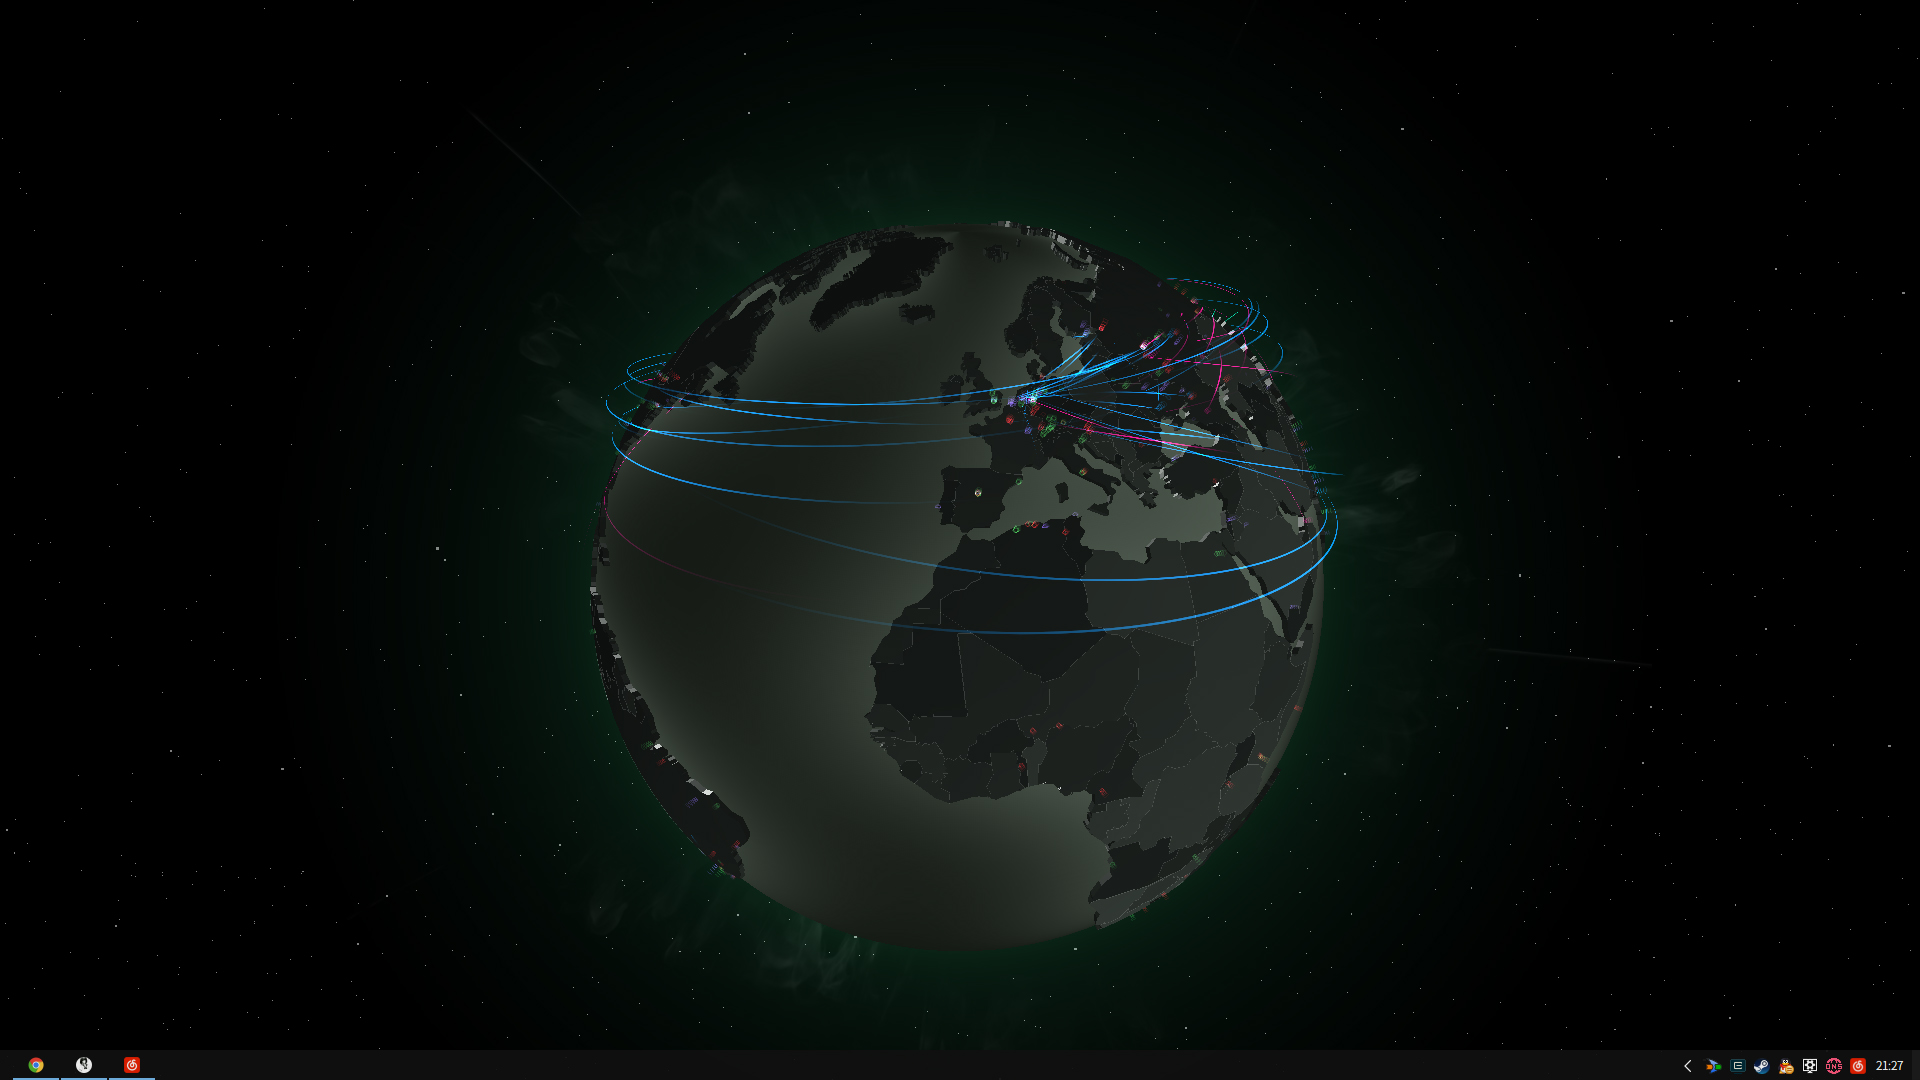 Global Network Traffic Wallpaper Engine